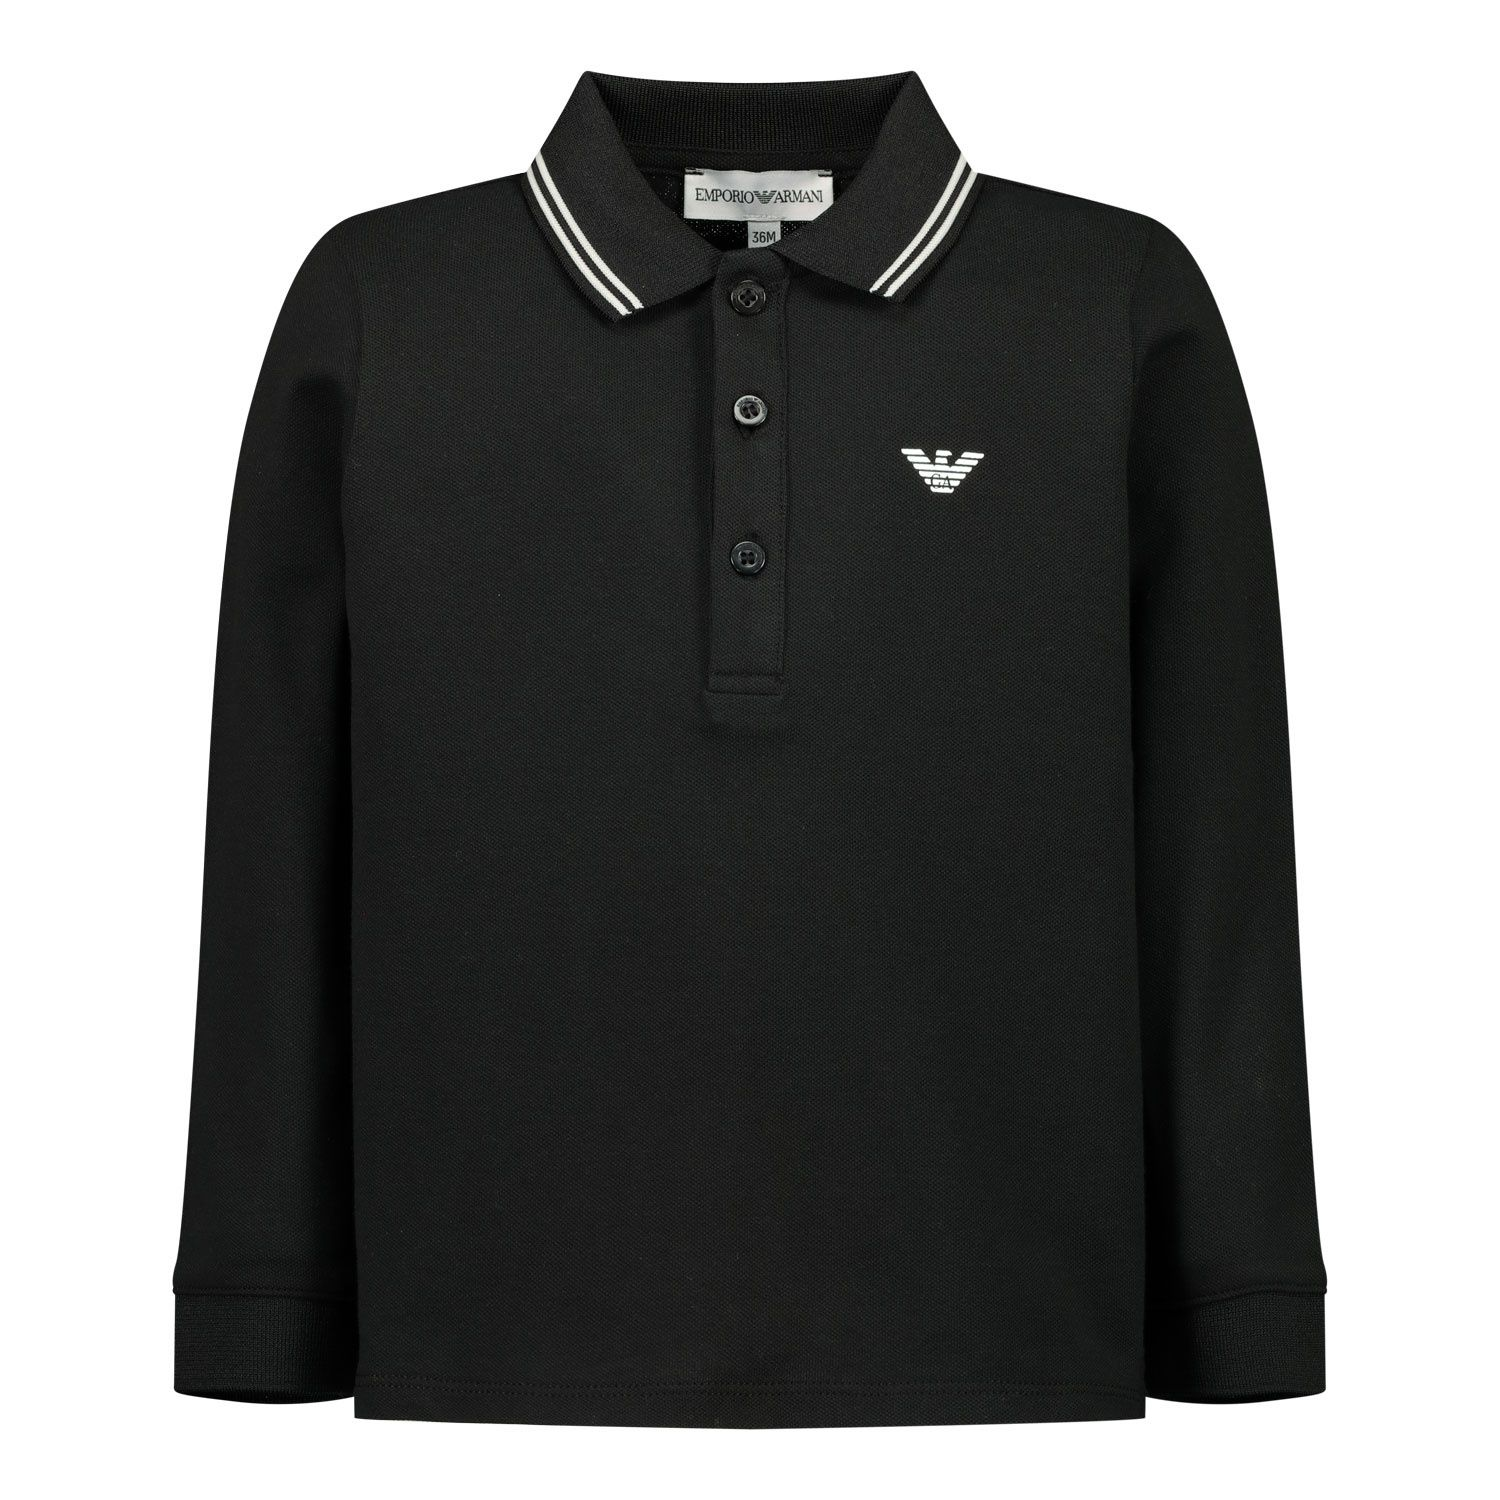 Picture of Armani 8NHF07 baby poloshirt black